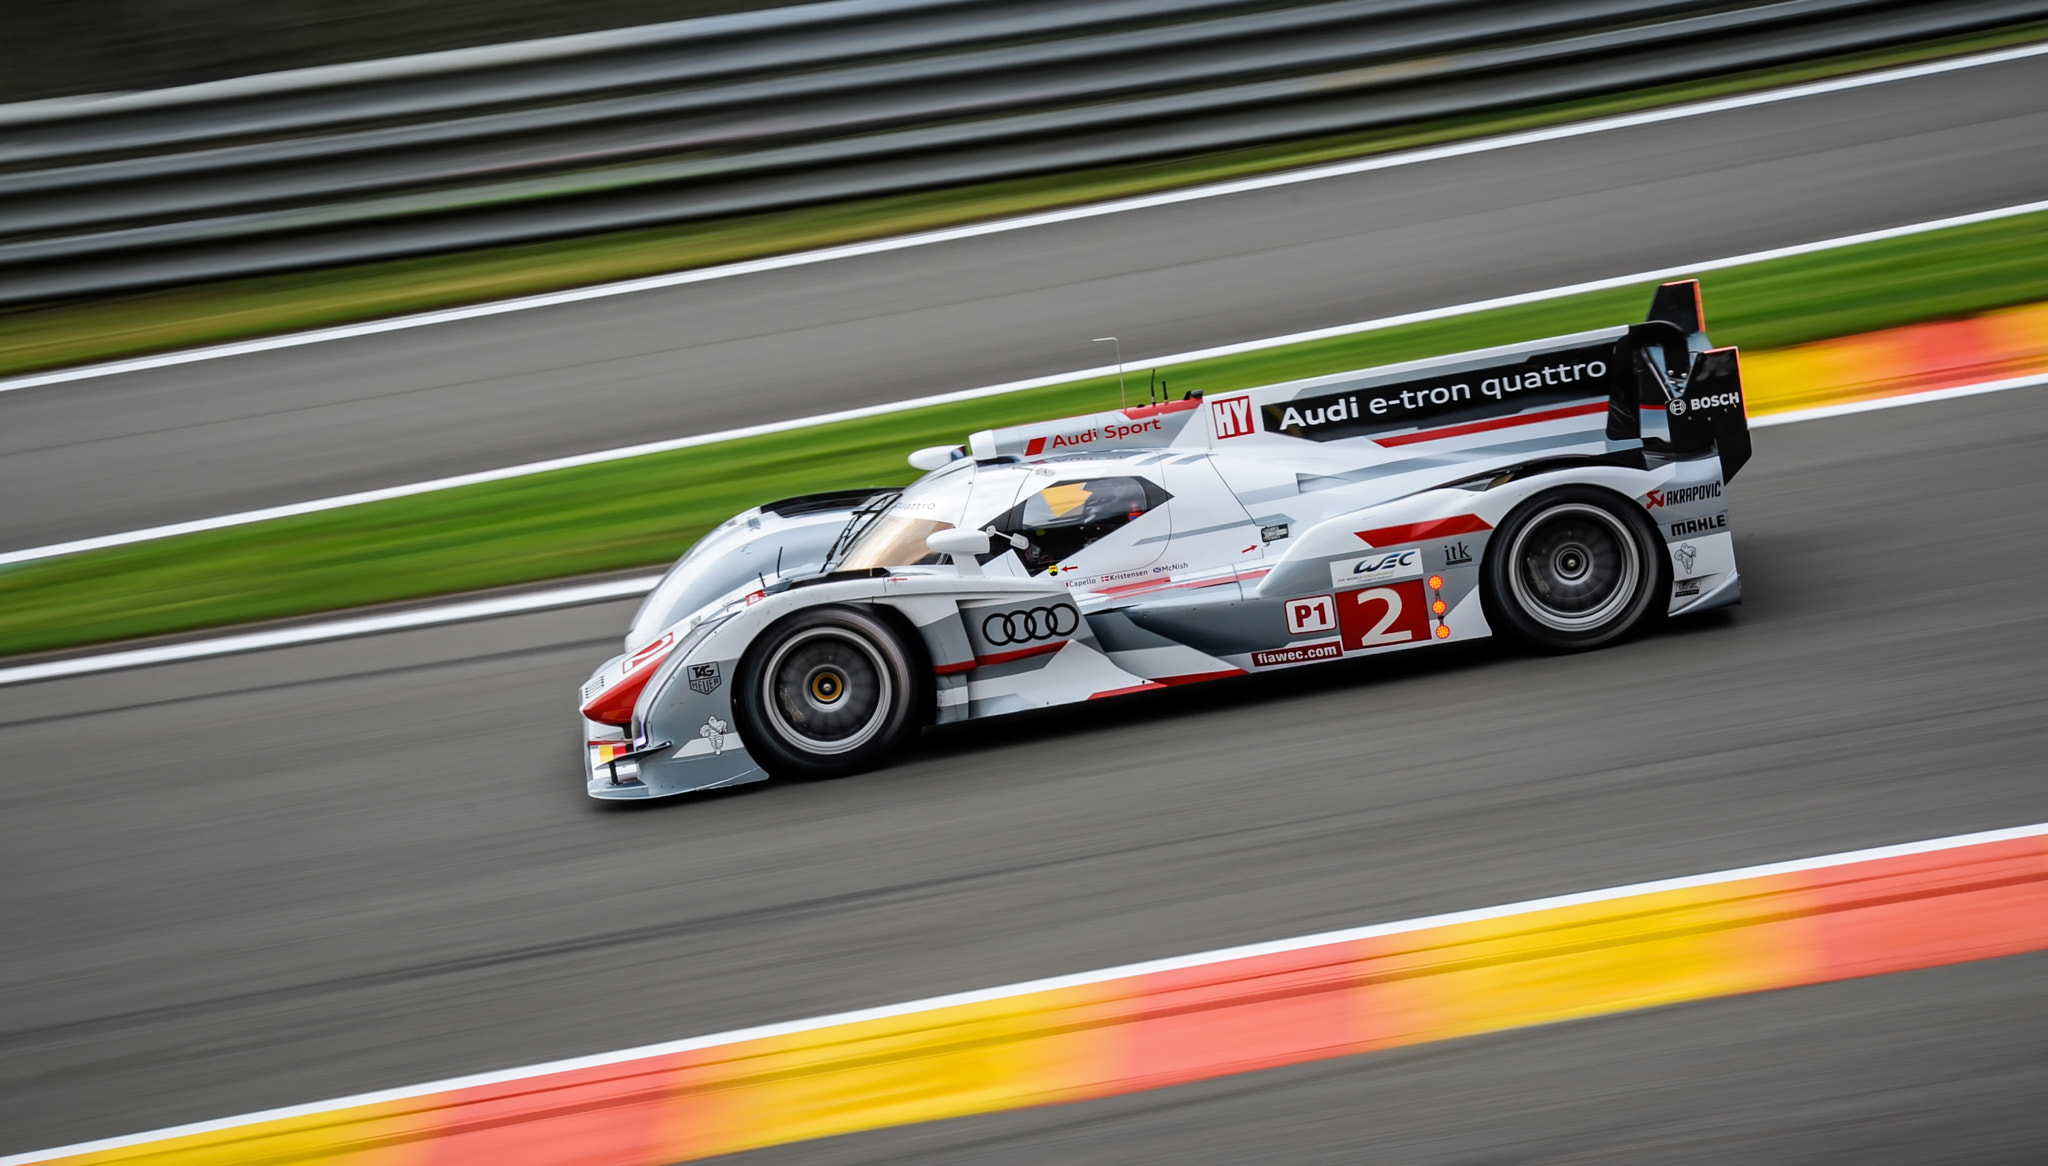 Photograph SPA /  Audi R18 e-tron quattro by Steffen Schreiber on 500px